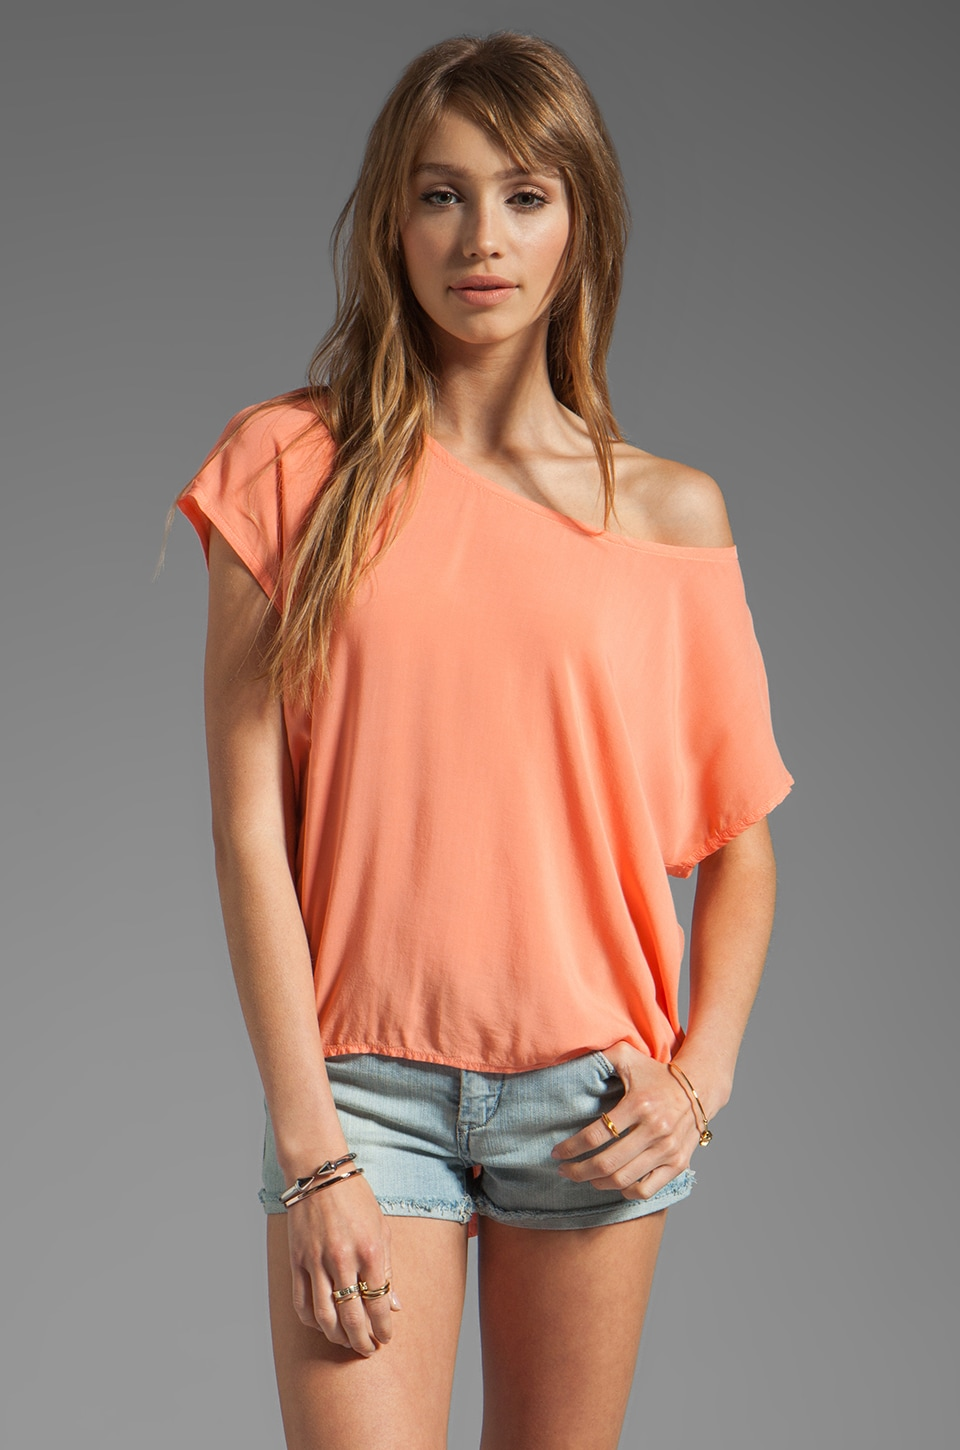 Splendid Shirting Tee in Apricot